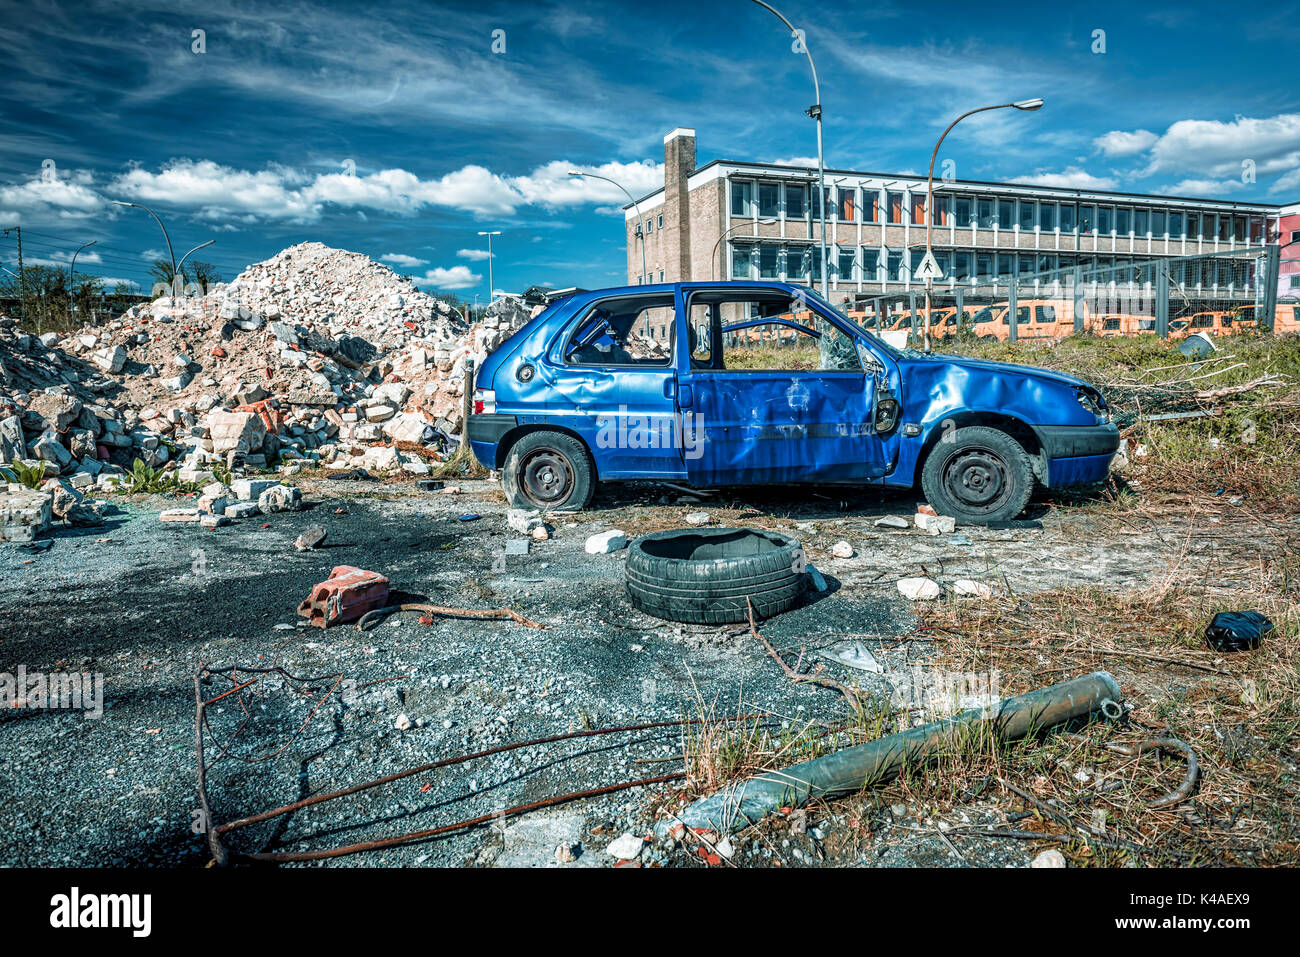 Recyclinghof Hamburg Bergedorf Car Disposal Stock Photos And Car Disposal Stock Images Alamy